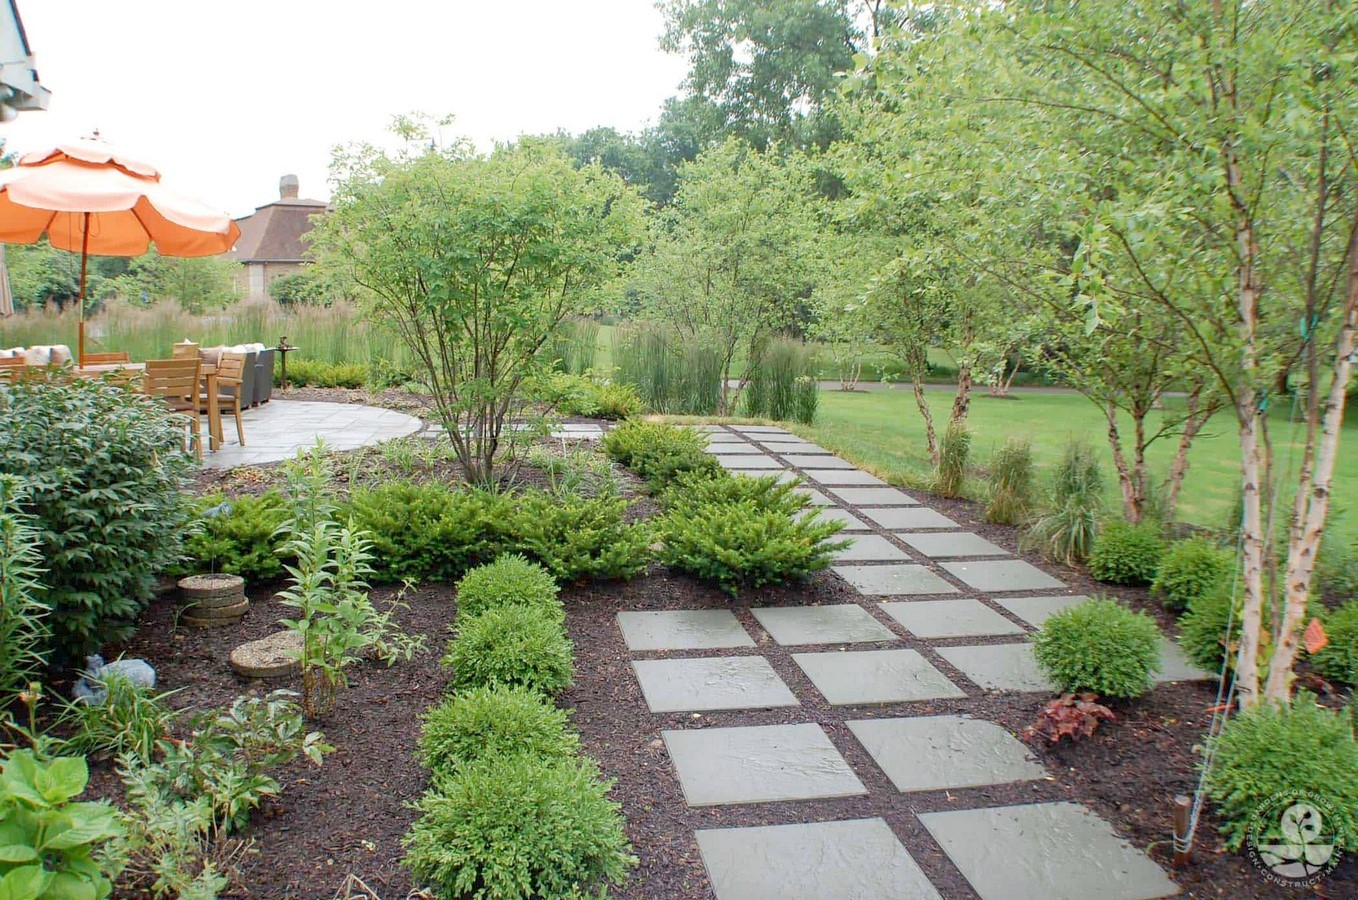 50 Ideas and Tips for Landscaping - Sheet8